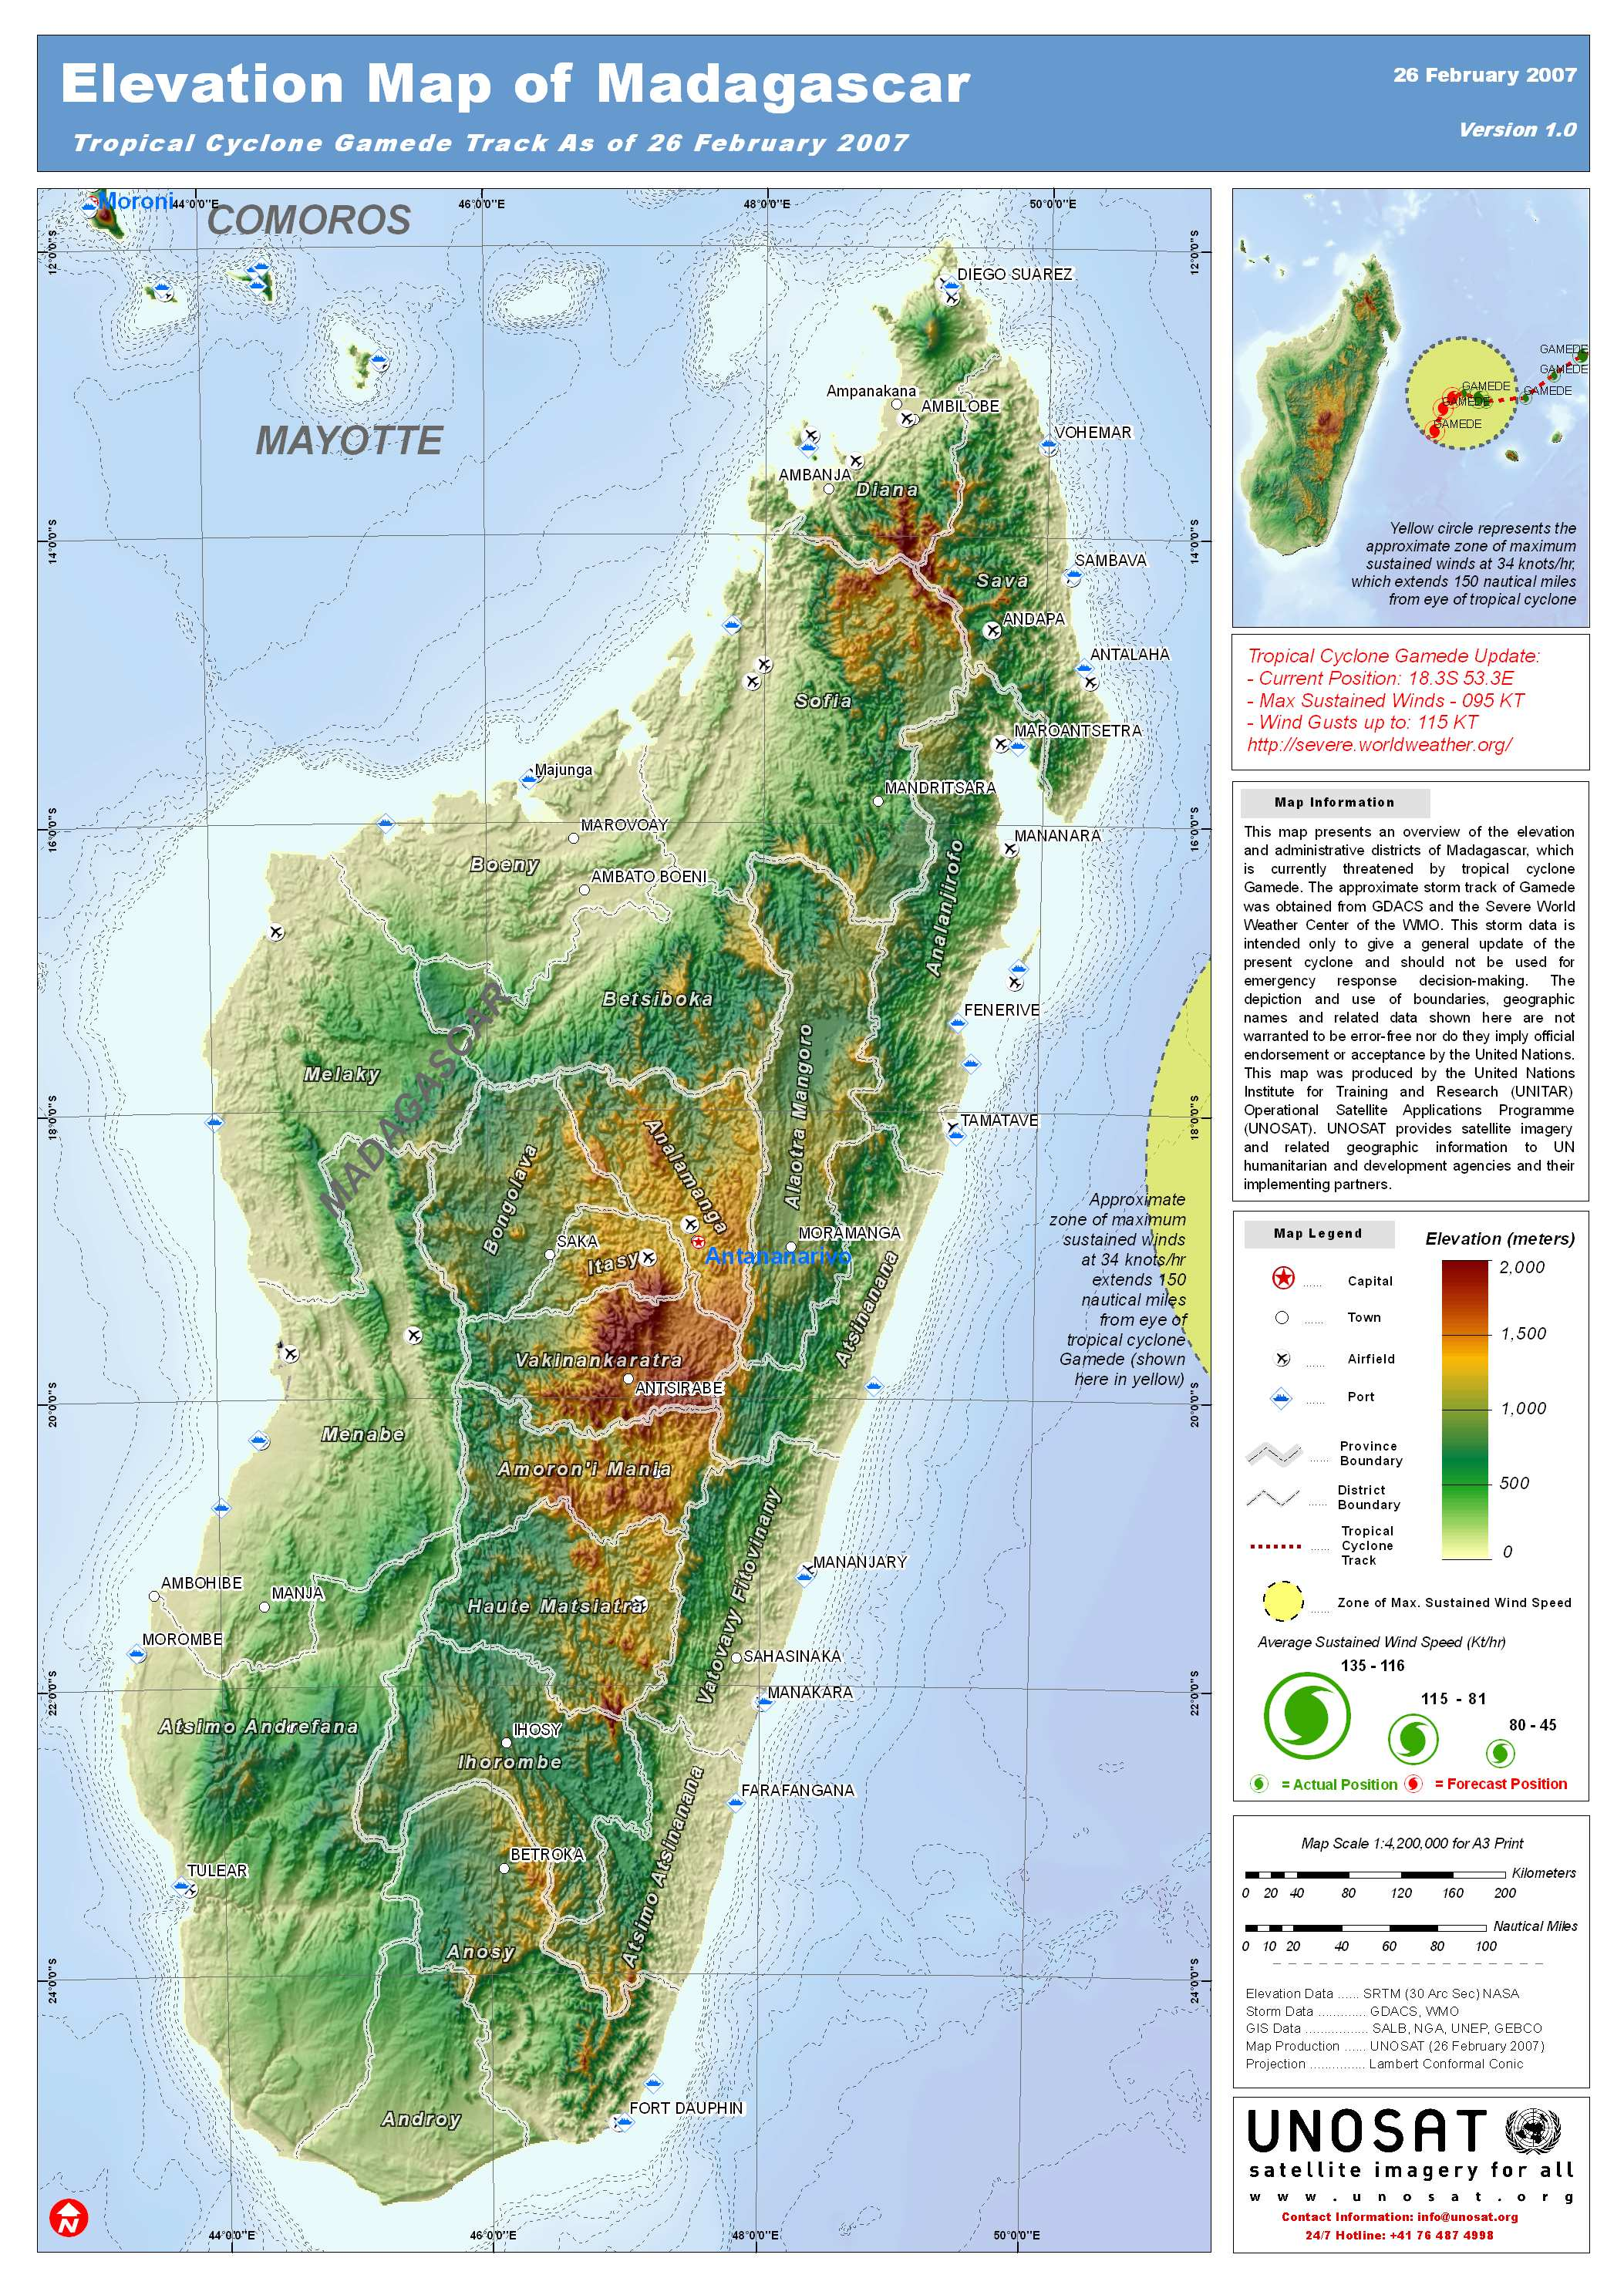 Elevation Map of Madagascar UNITAR